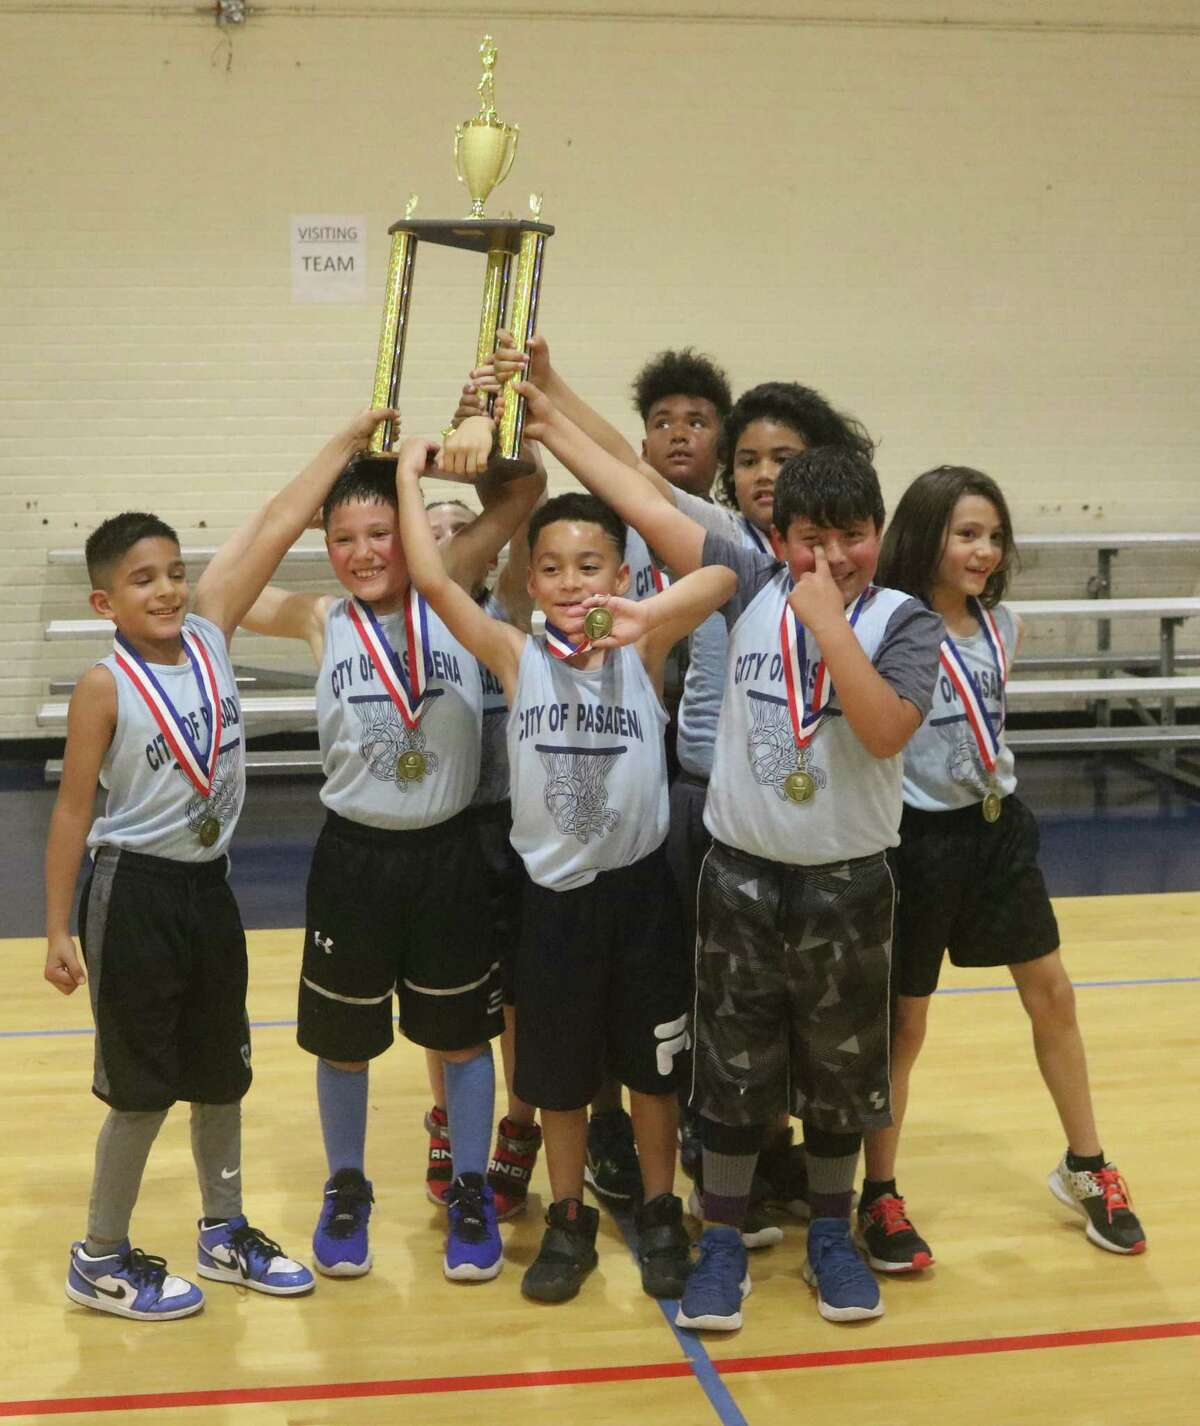 The Ball Starts, the 7 and 8-year-old city champs, raise their trophy at PAL Gym Saturday night.